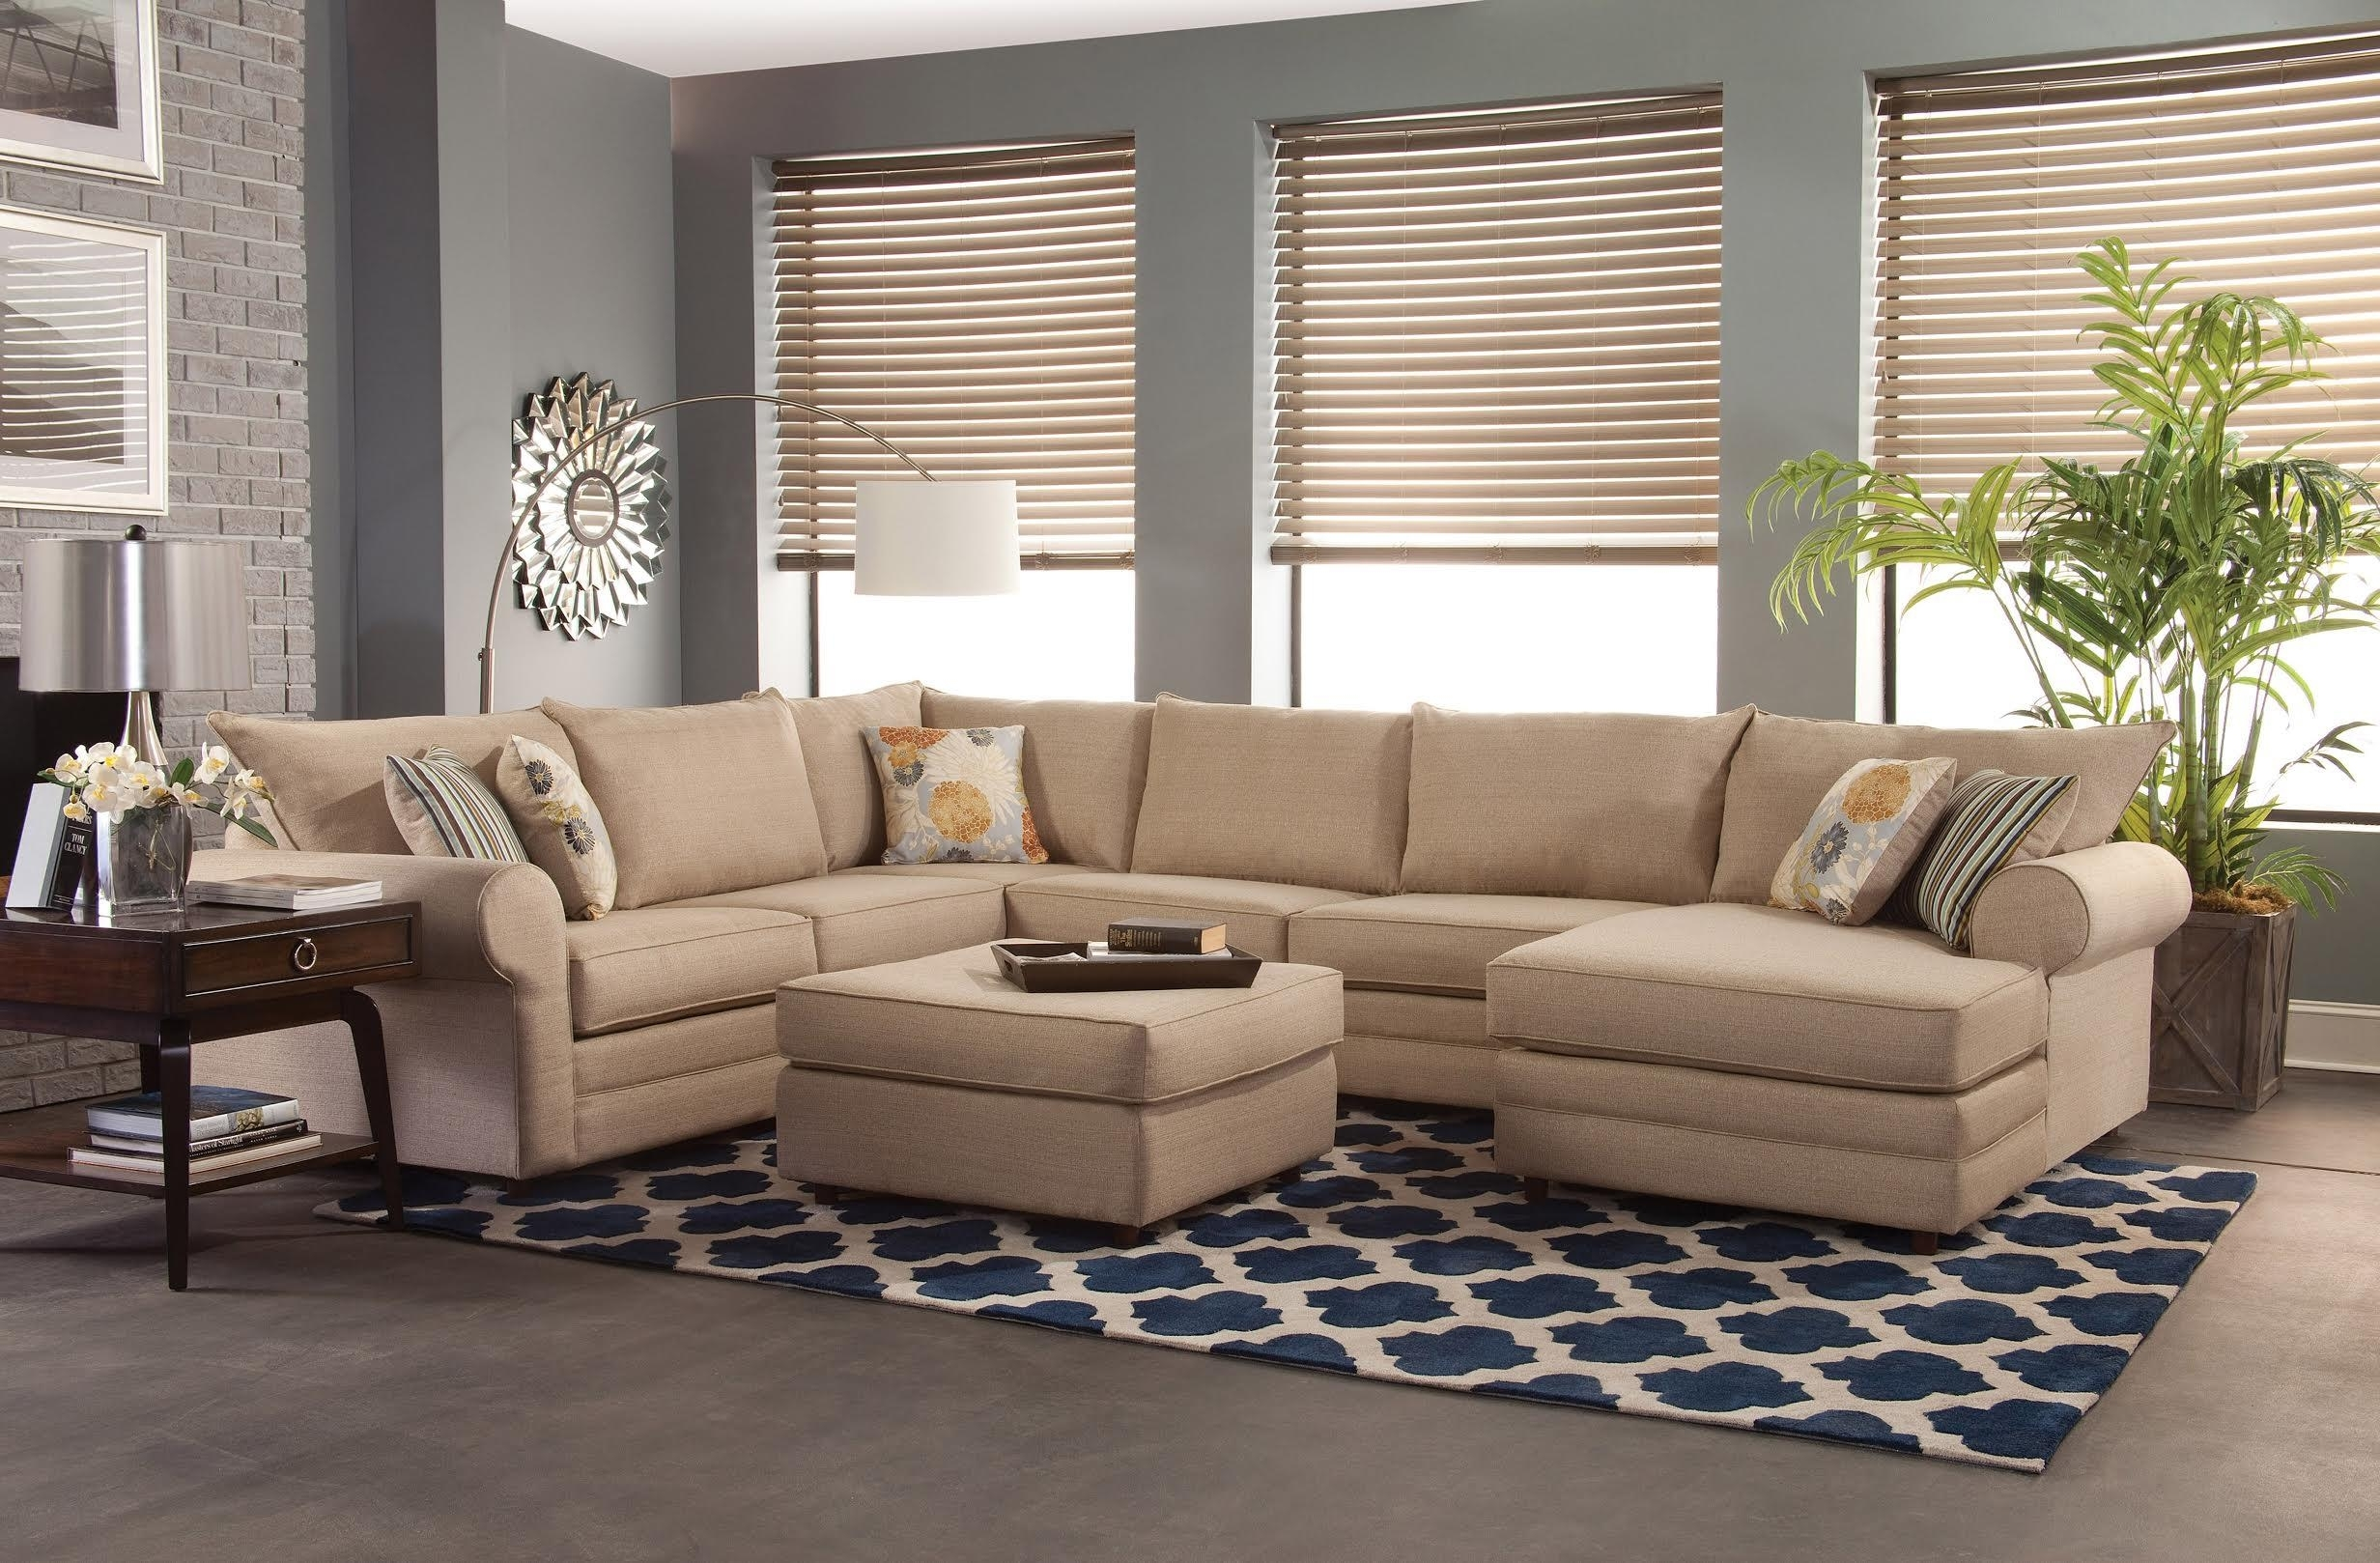 Sectional Sofas Maryland - Home And Textiles regarding Maryland Sofas (Image 8 of 10)